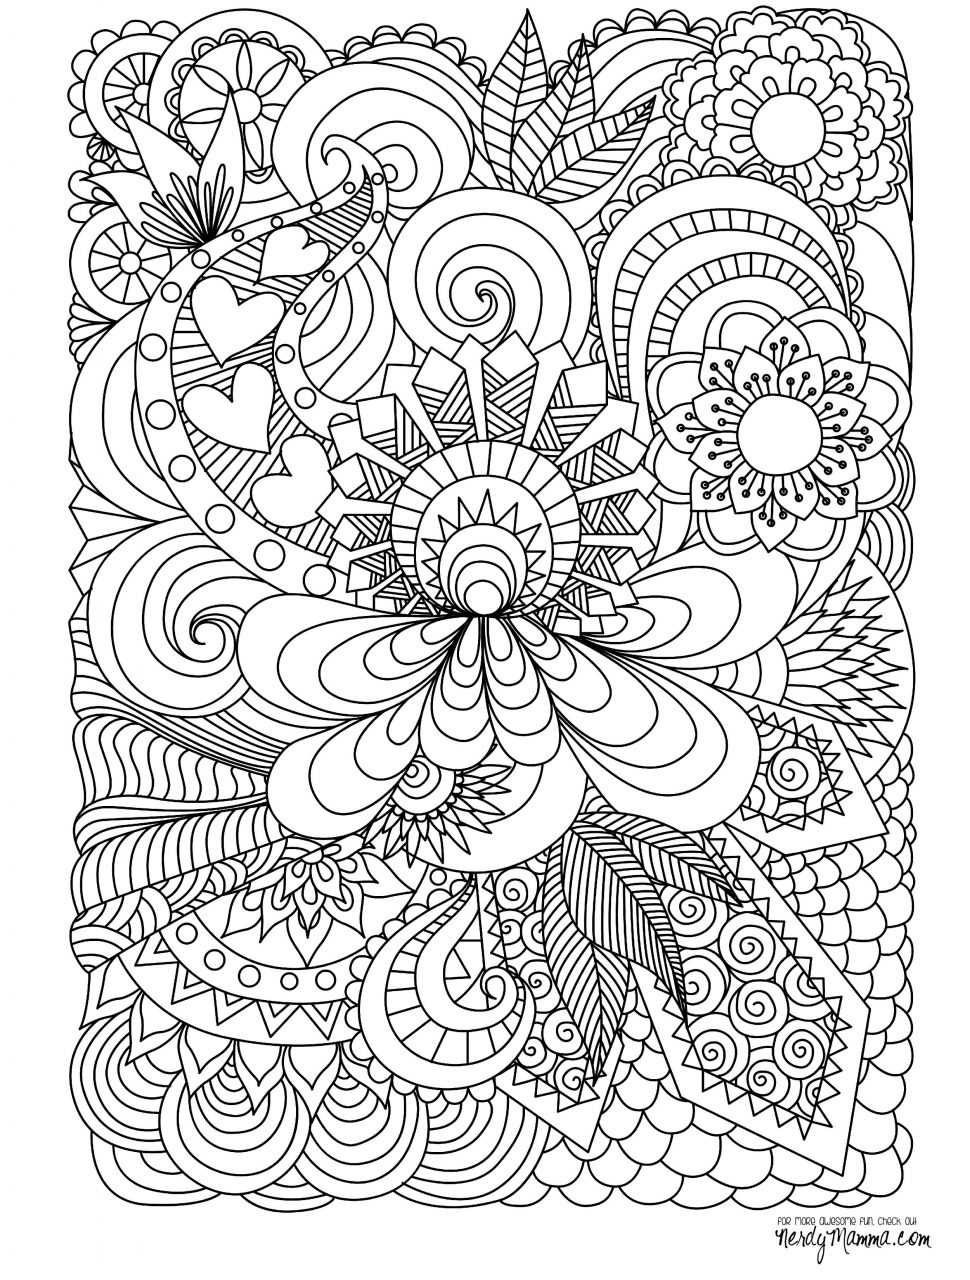 Abstract Flowers Drawing at GetDrawings.com | Free for personal use ...